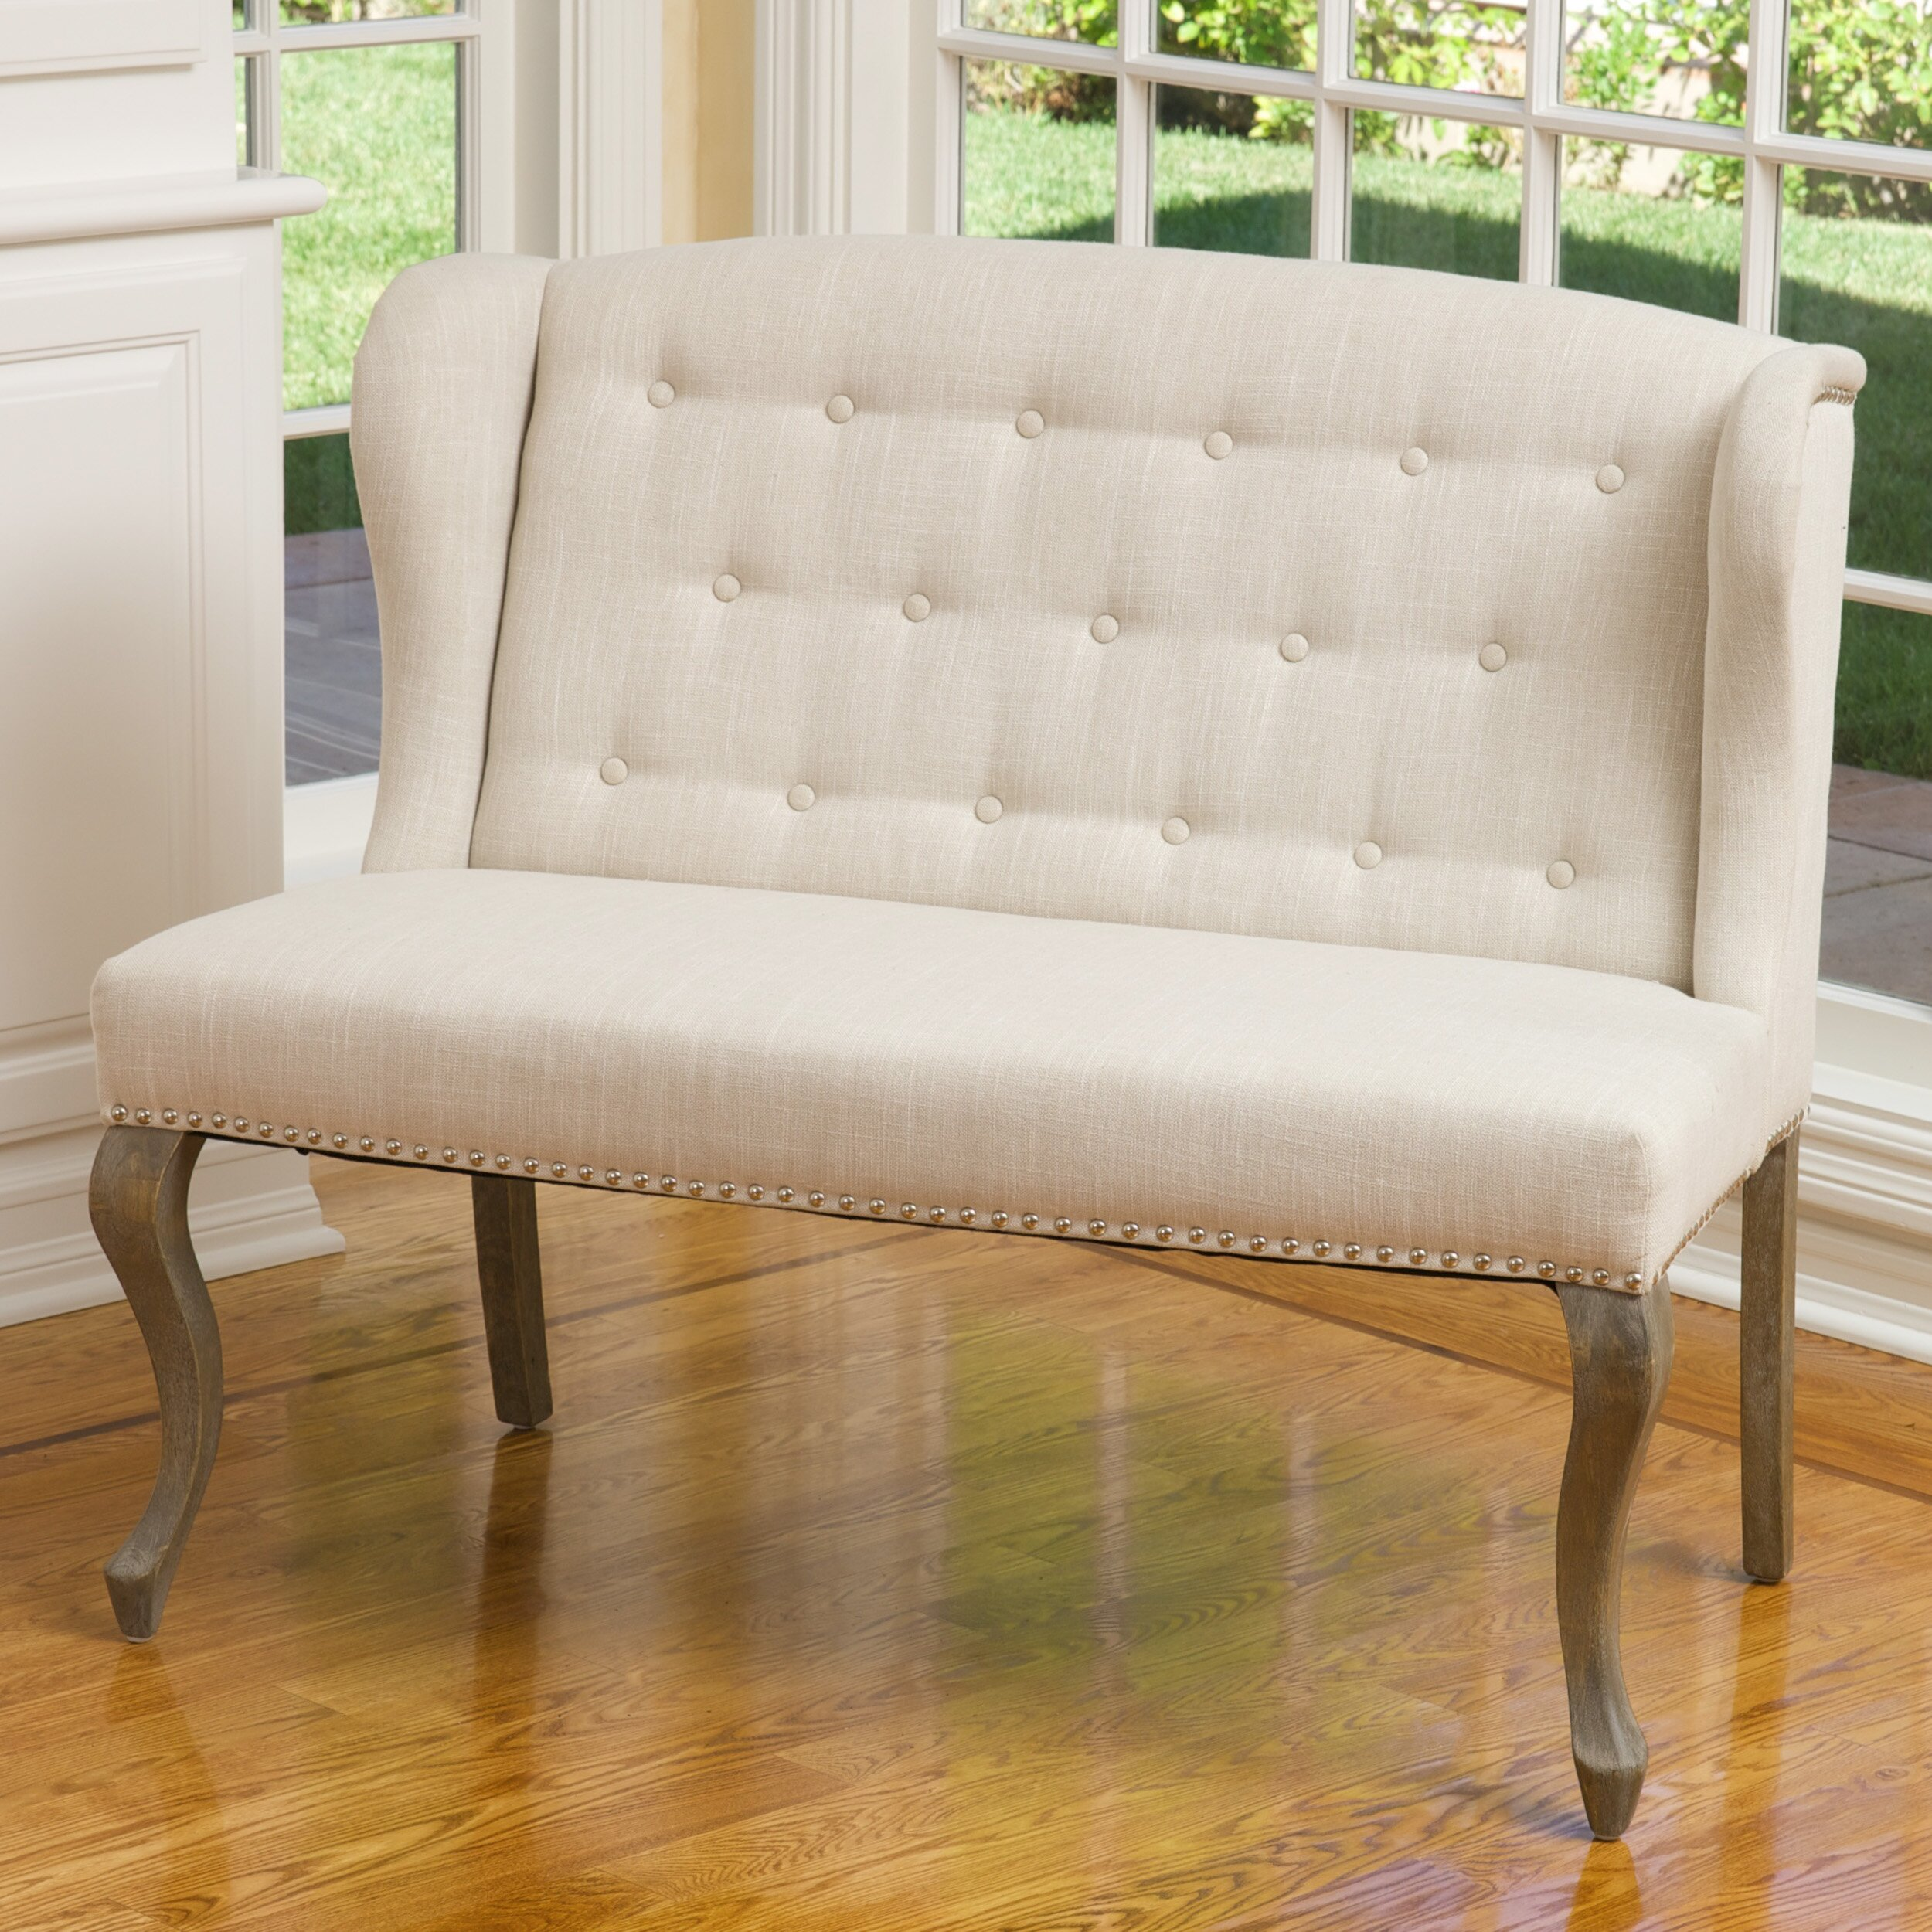 Lark Manor Guyette Upholstered Bedroom Bench Reviews Wayfair